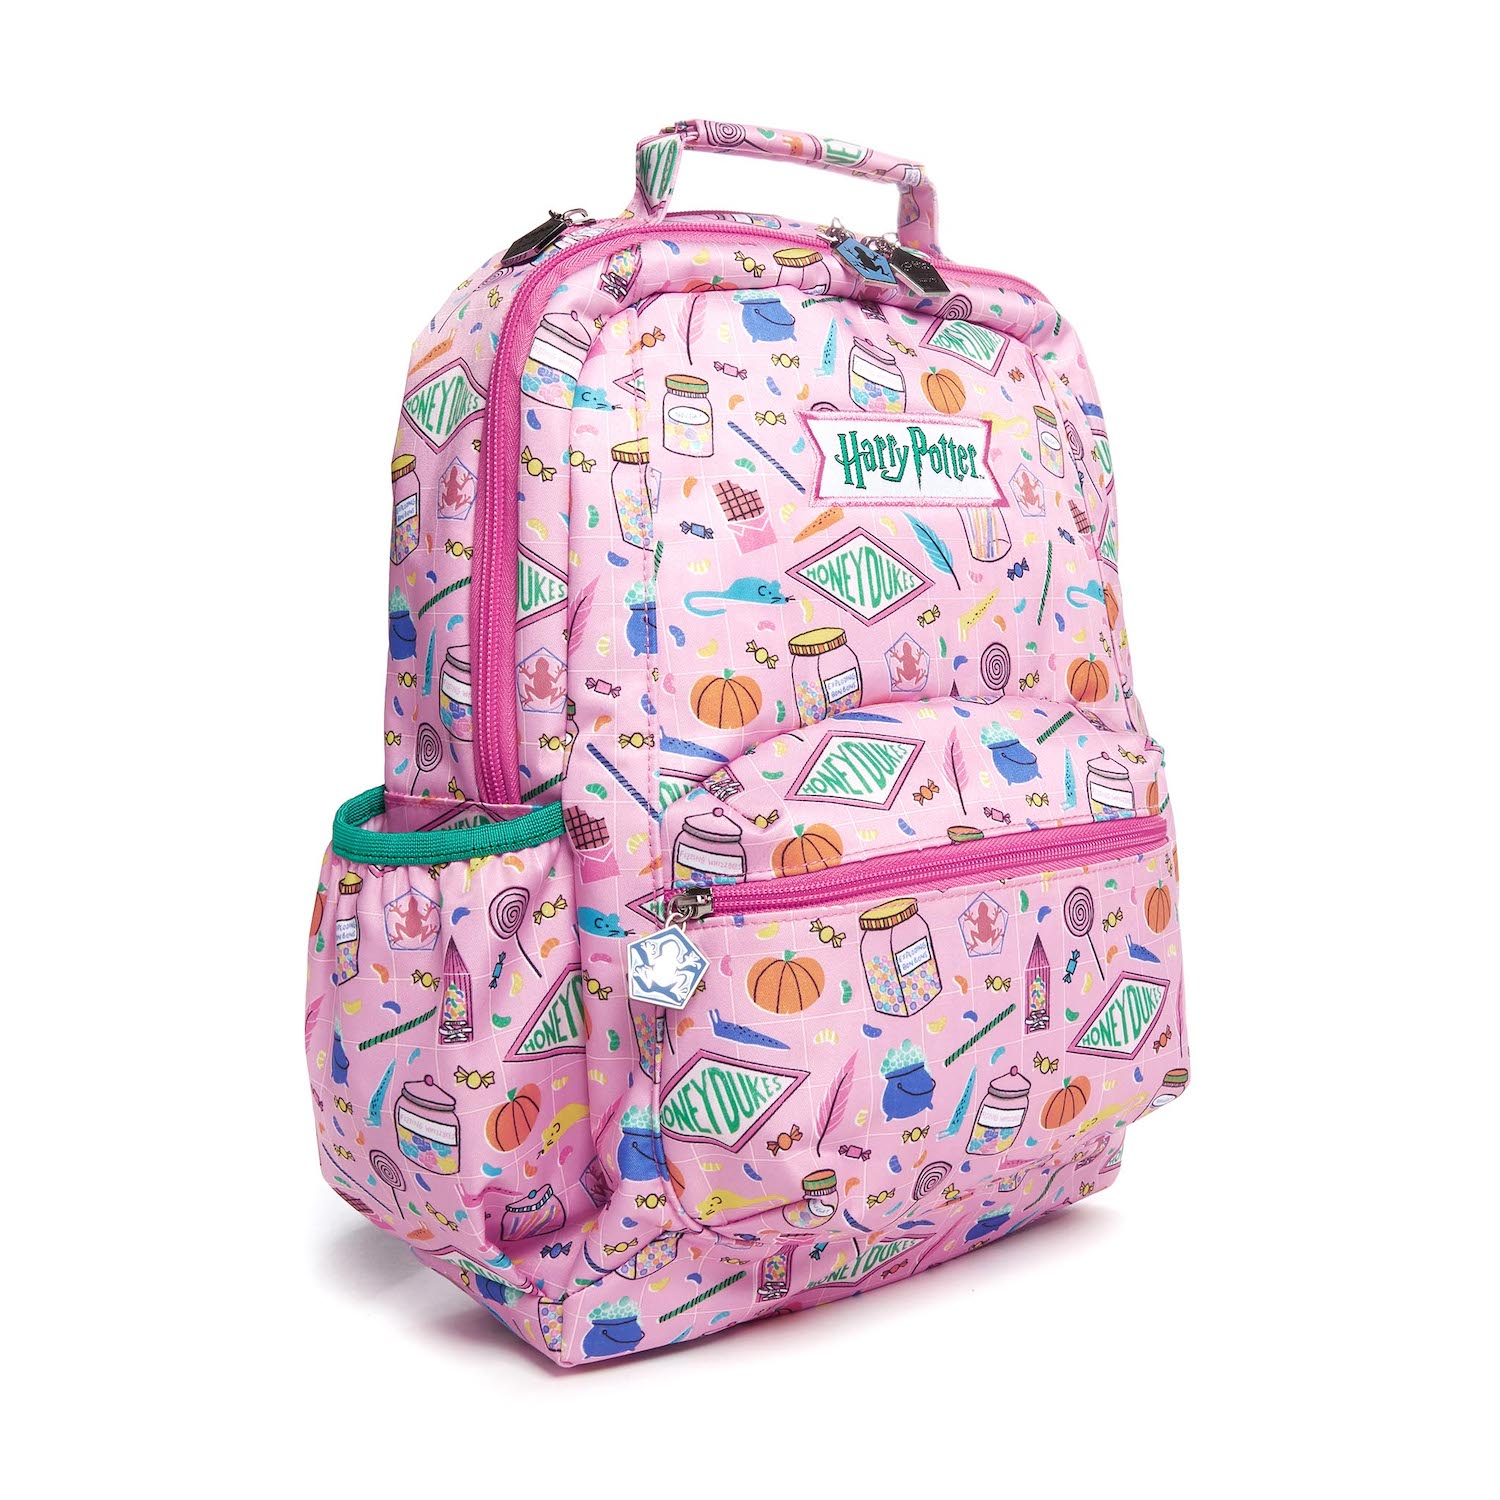 JuJuBe Honeydukes backpack, side view expanded